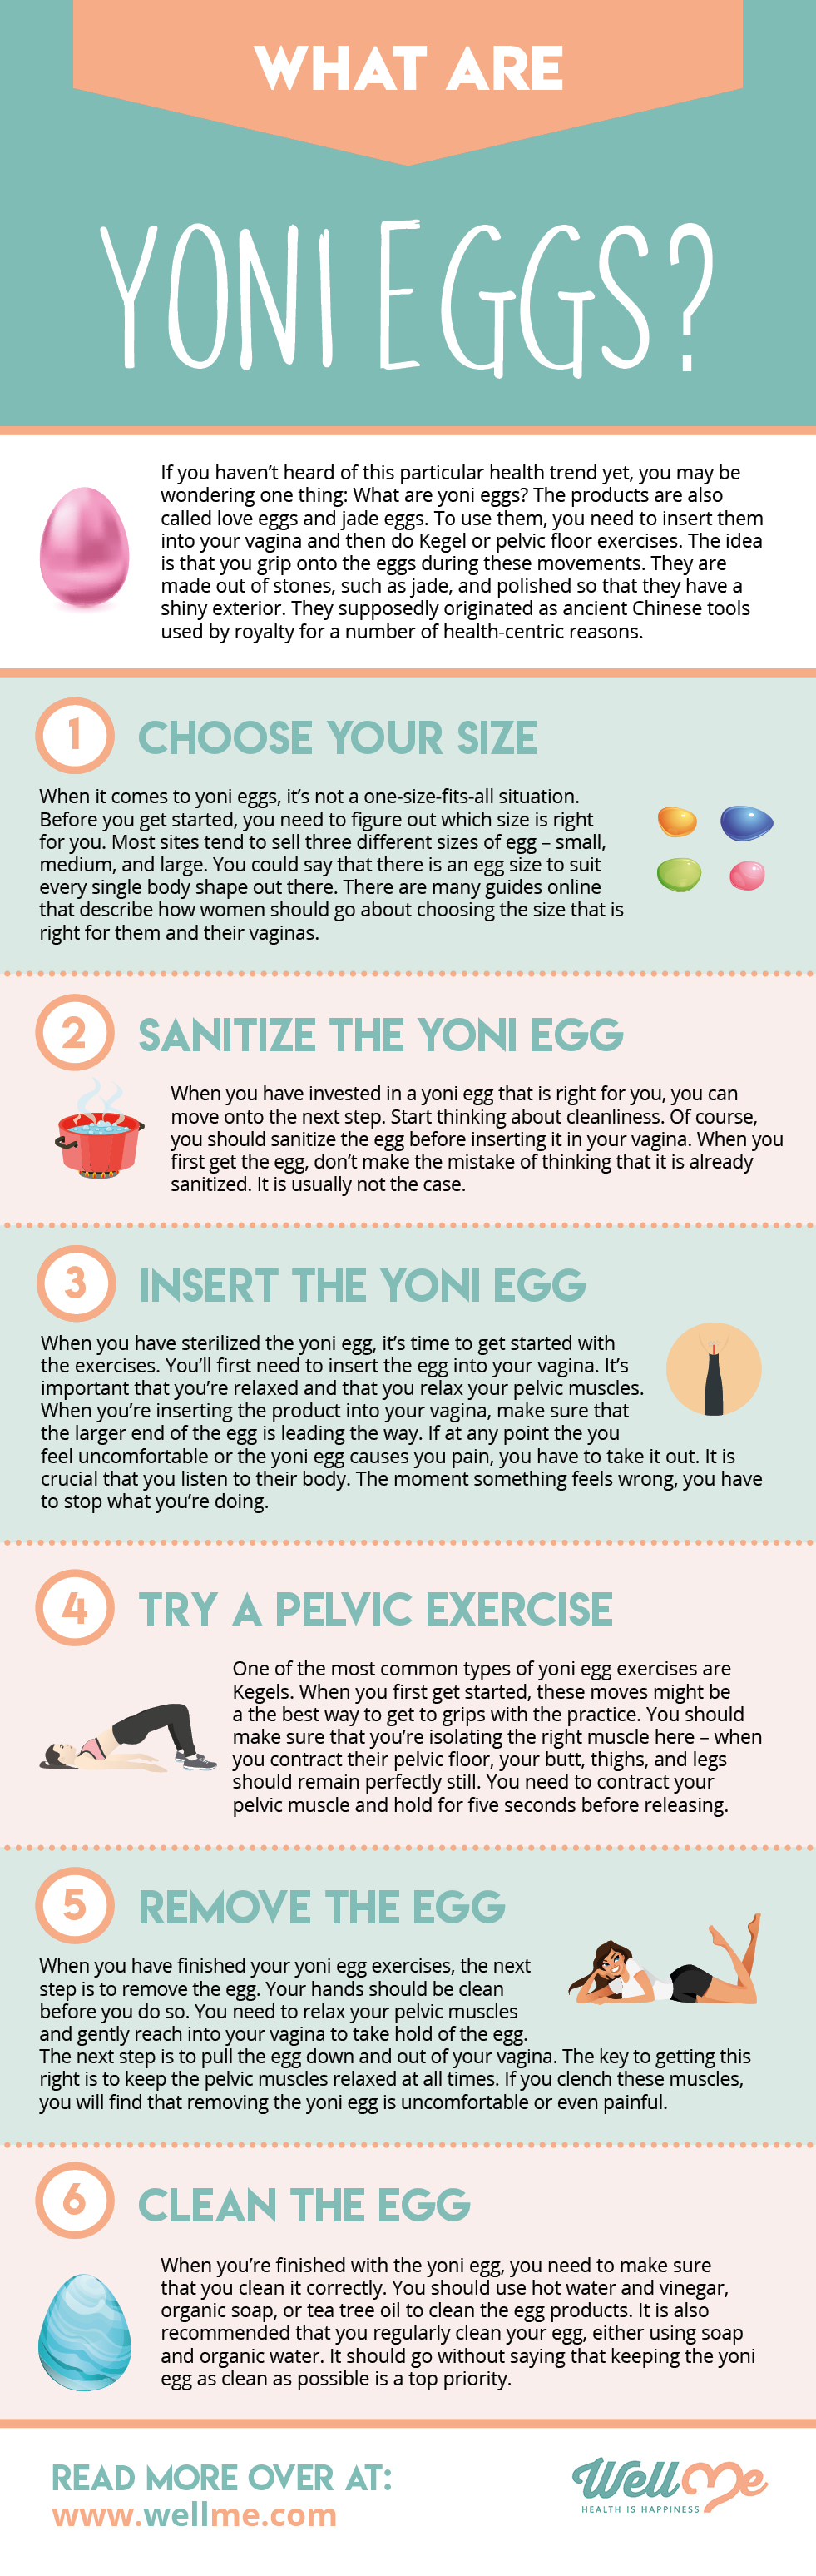 What Are Yoni Eggs infographic